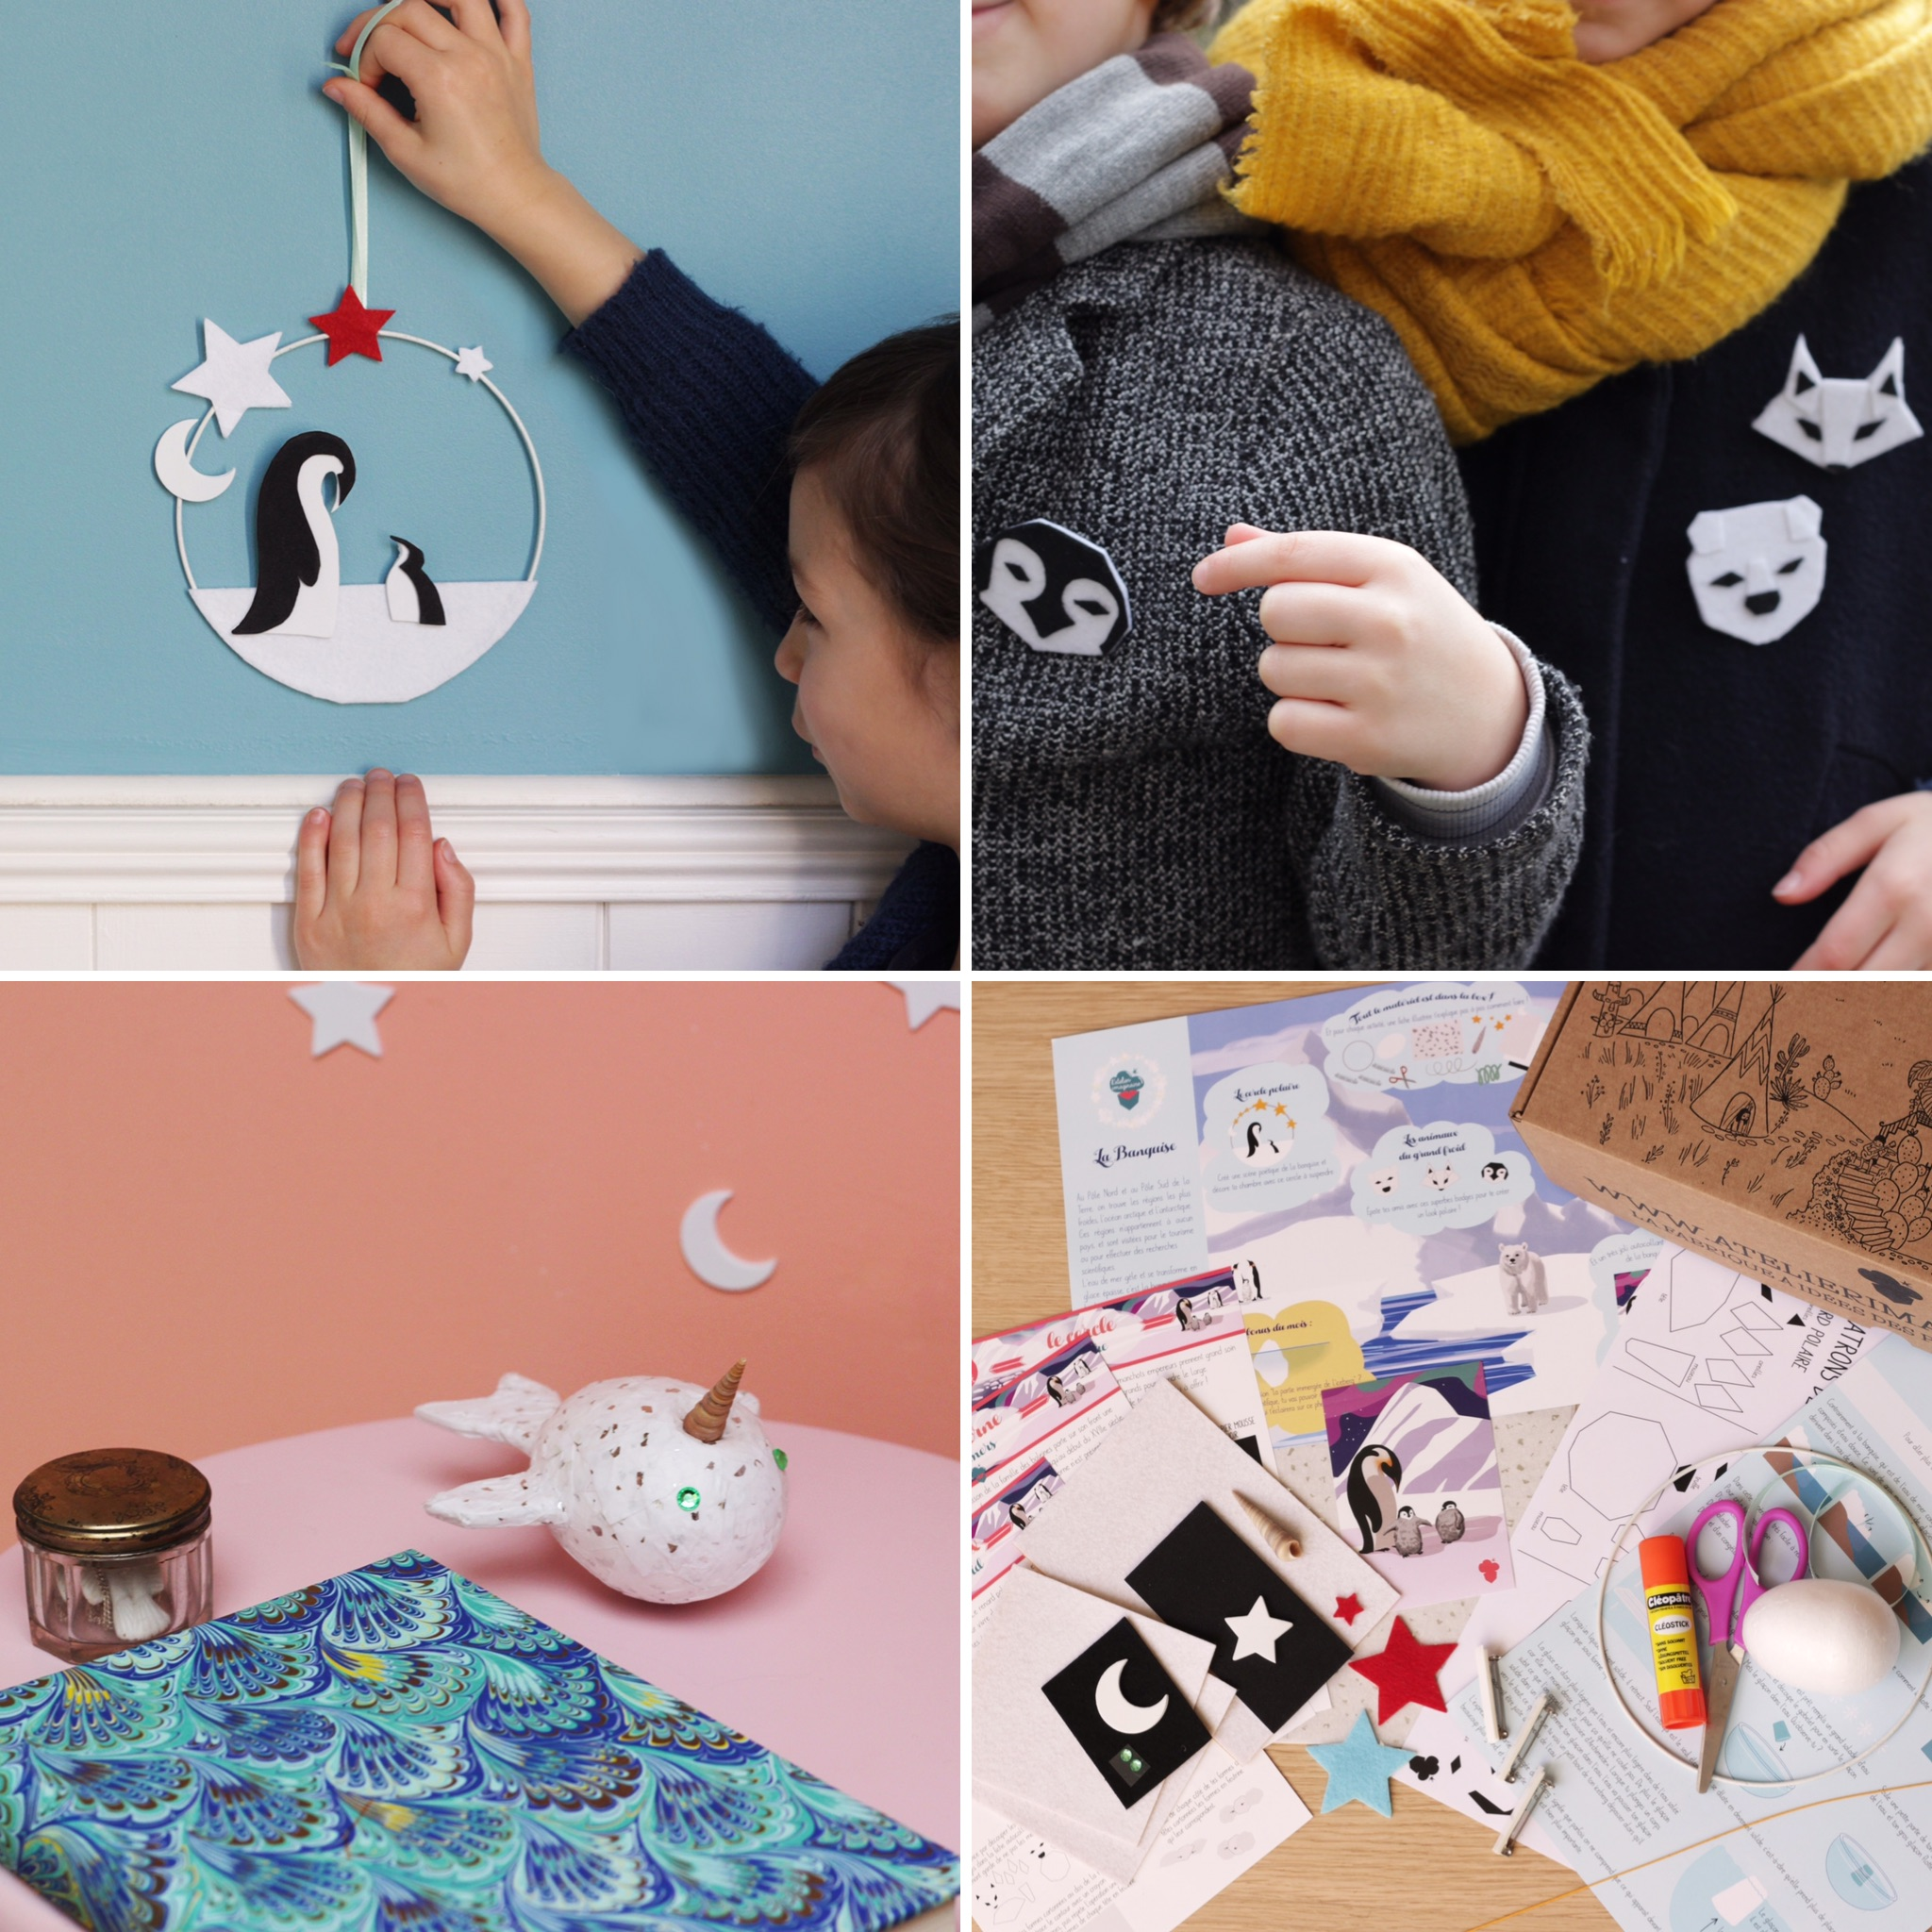 box-creative-banquise-noel-enfants